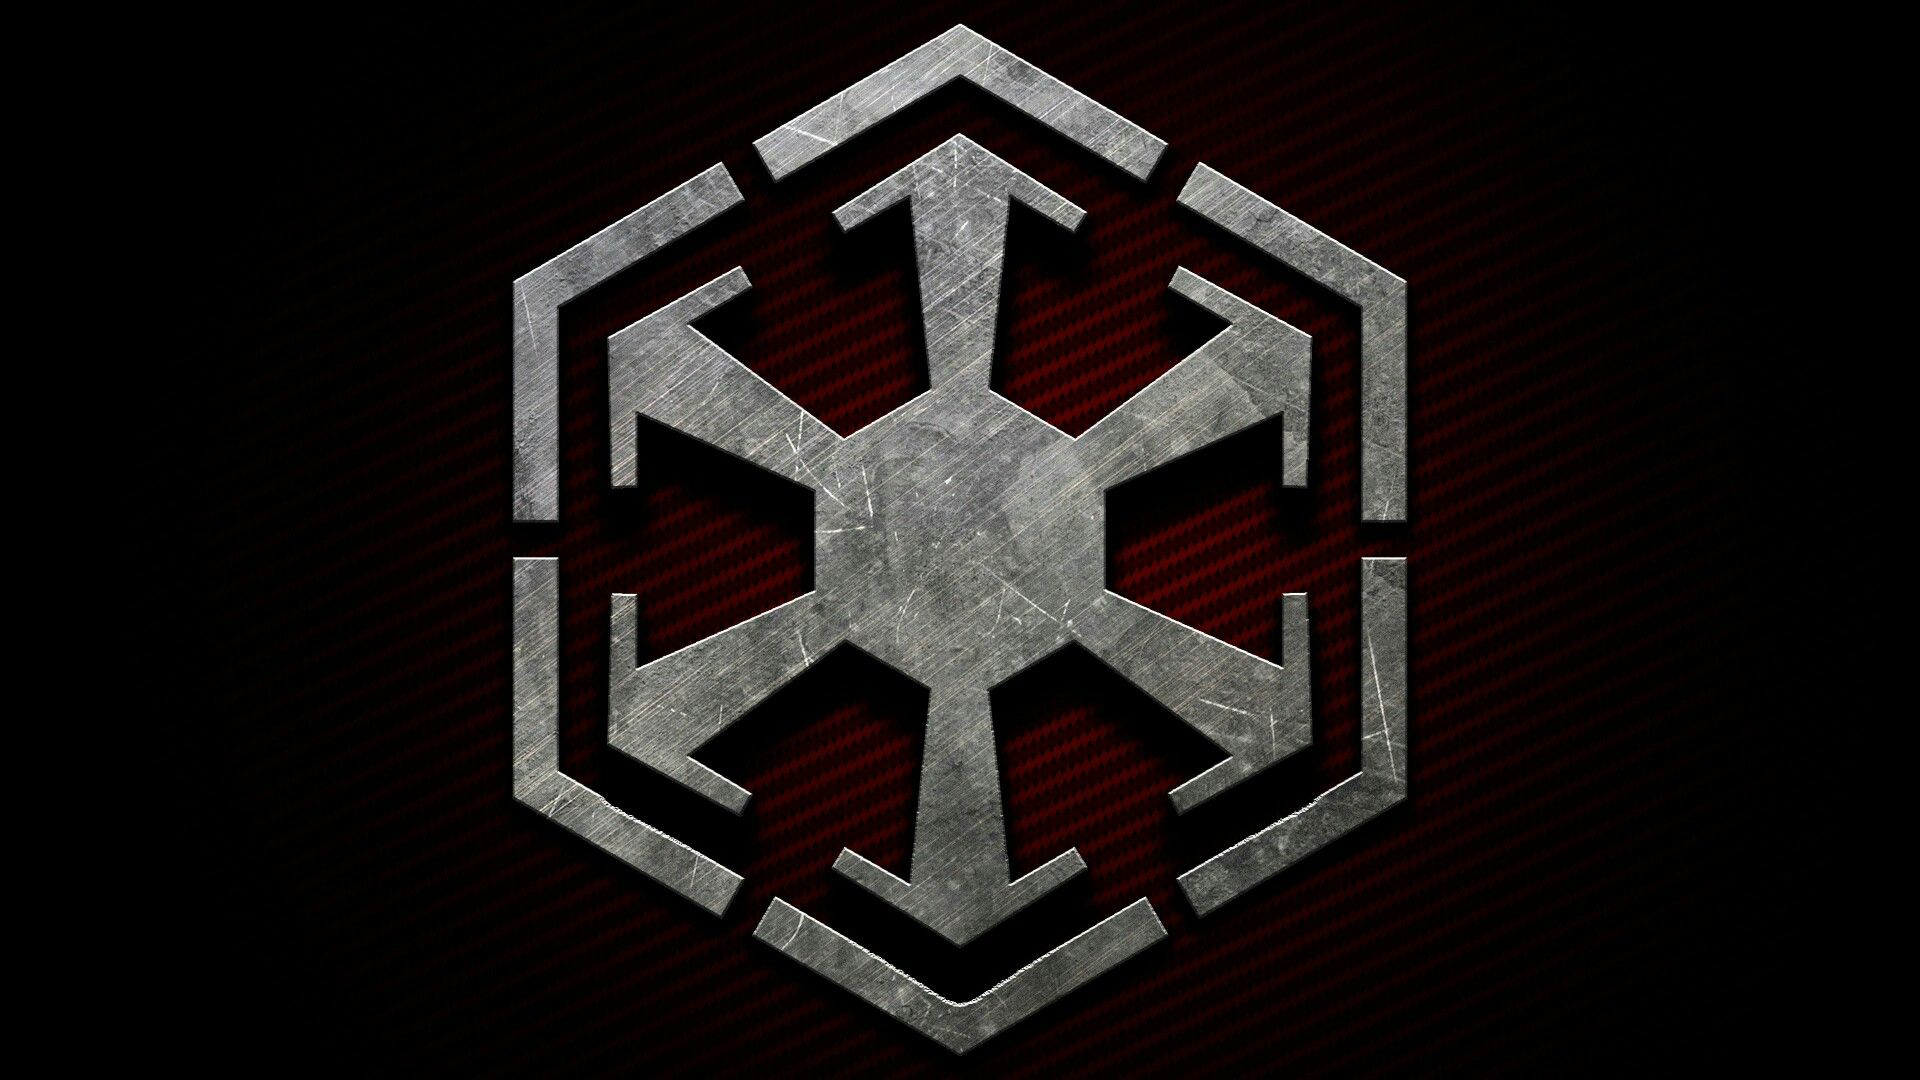 Star Wars The Old Republic SWTOR Sith Empire Iphone